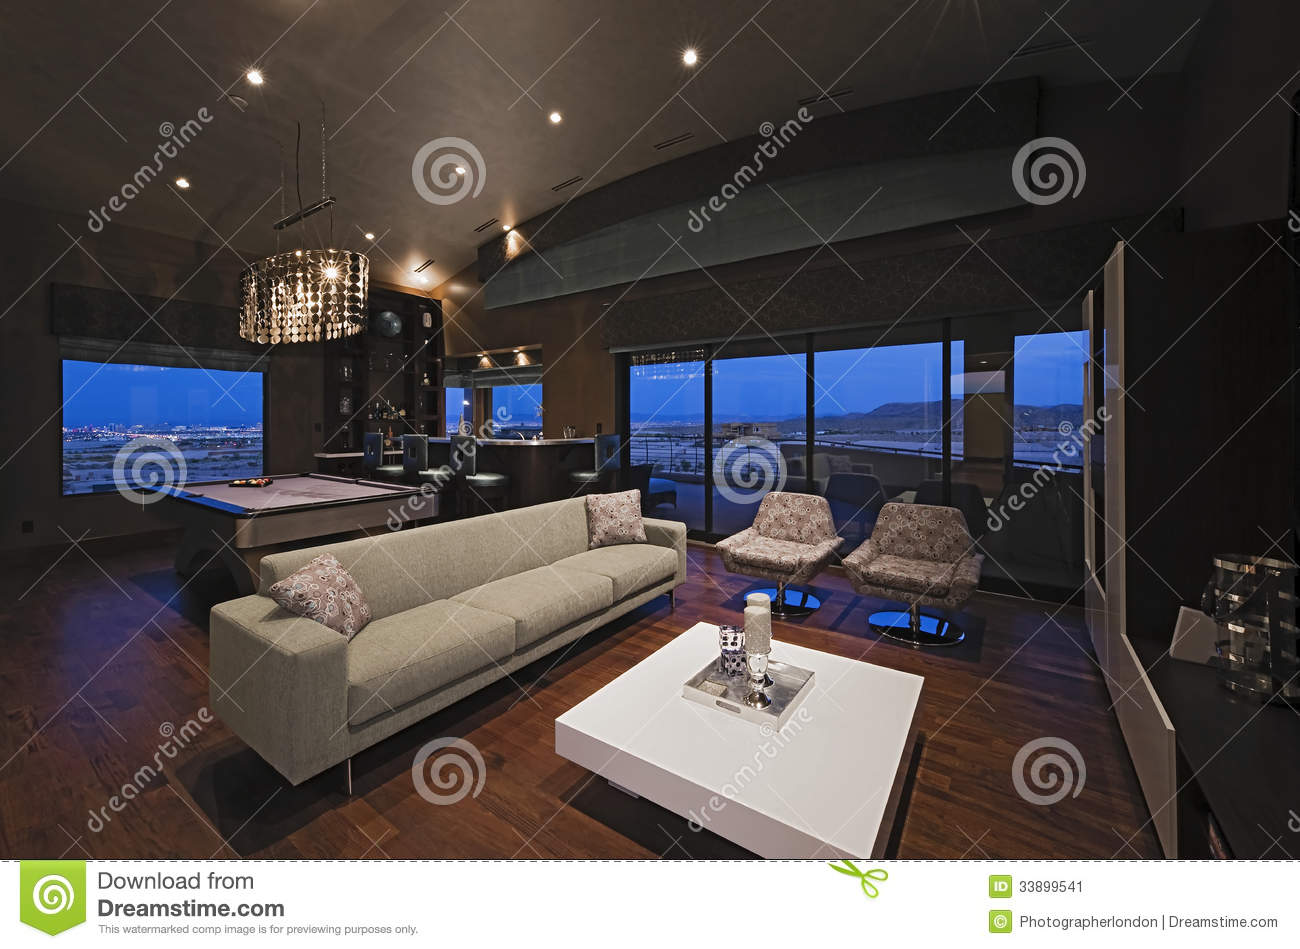 Living Room With Bar Counter And Snooker Table Stock Image